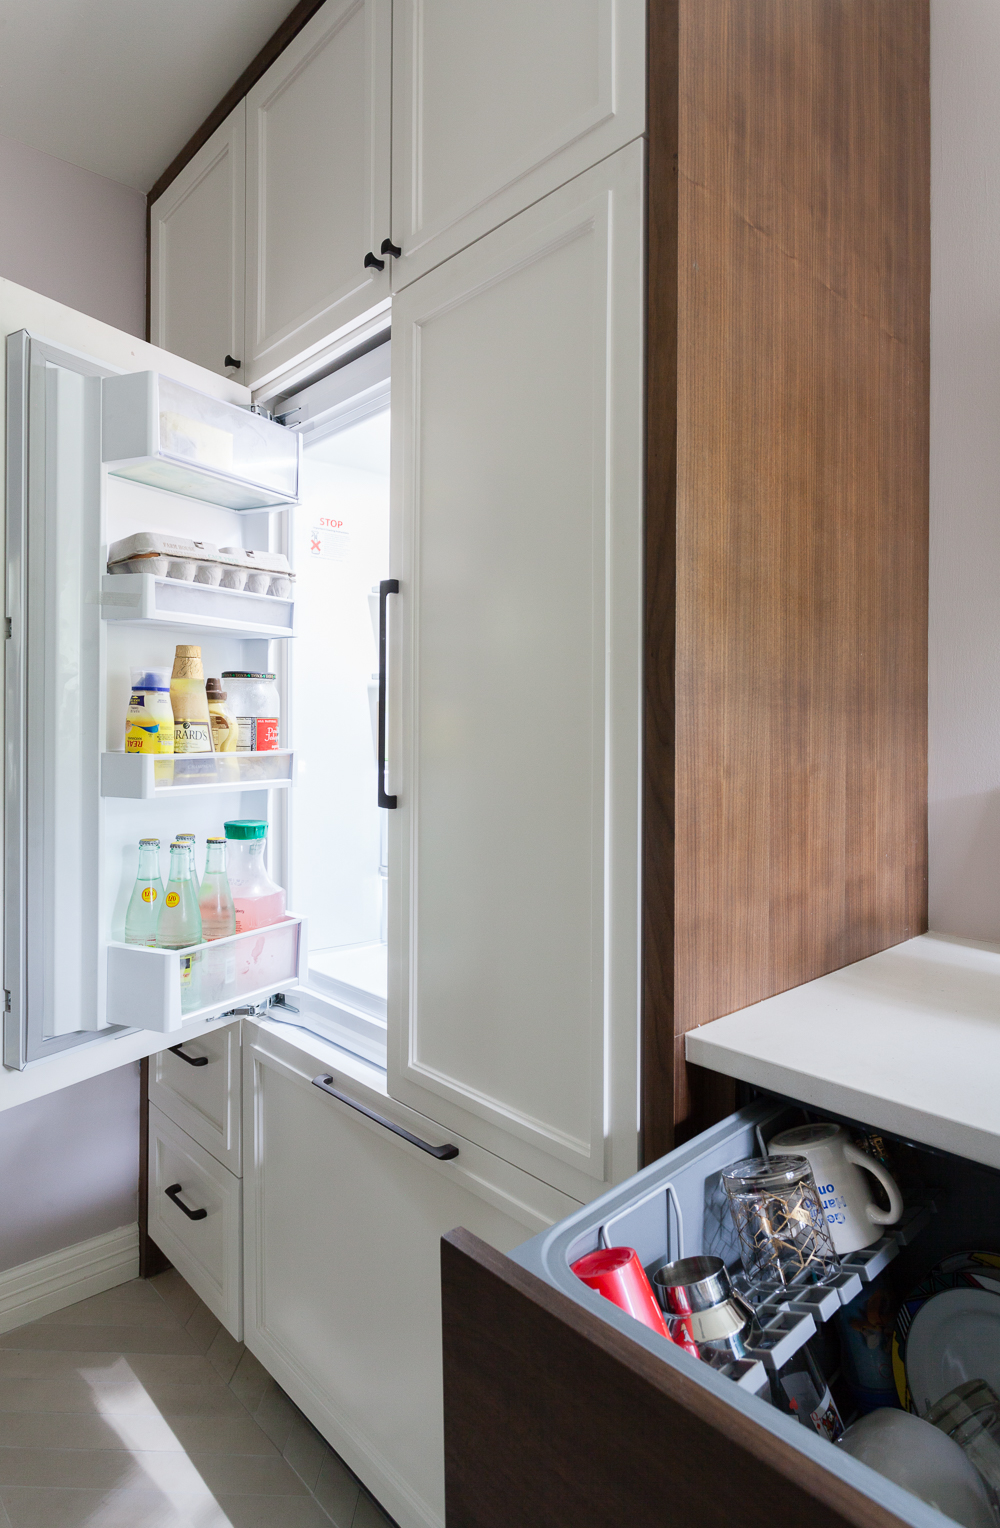 Integrated Fisher and Paykel refrigerator and dishwasher. Custom white cabinets with quartersawn walnut casing.